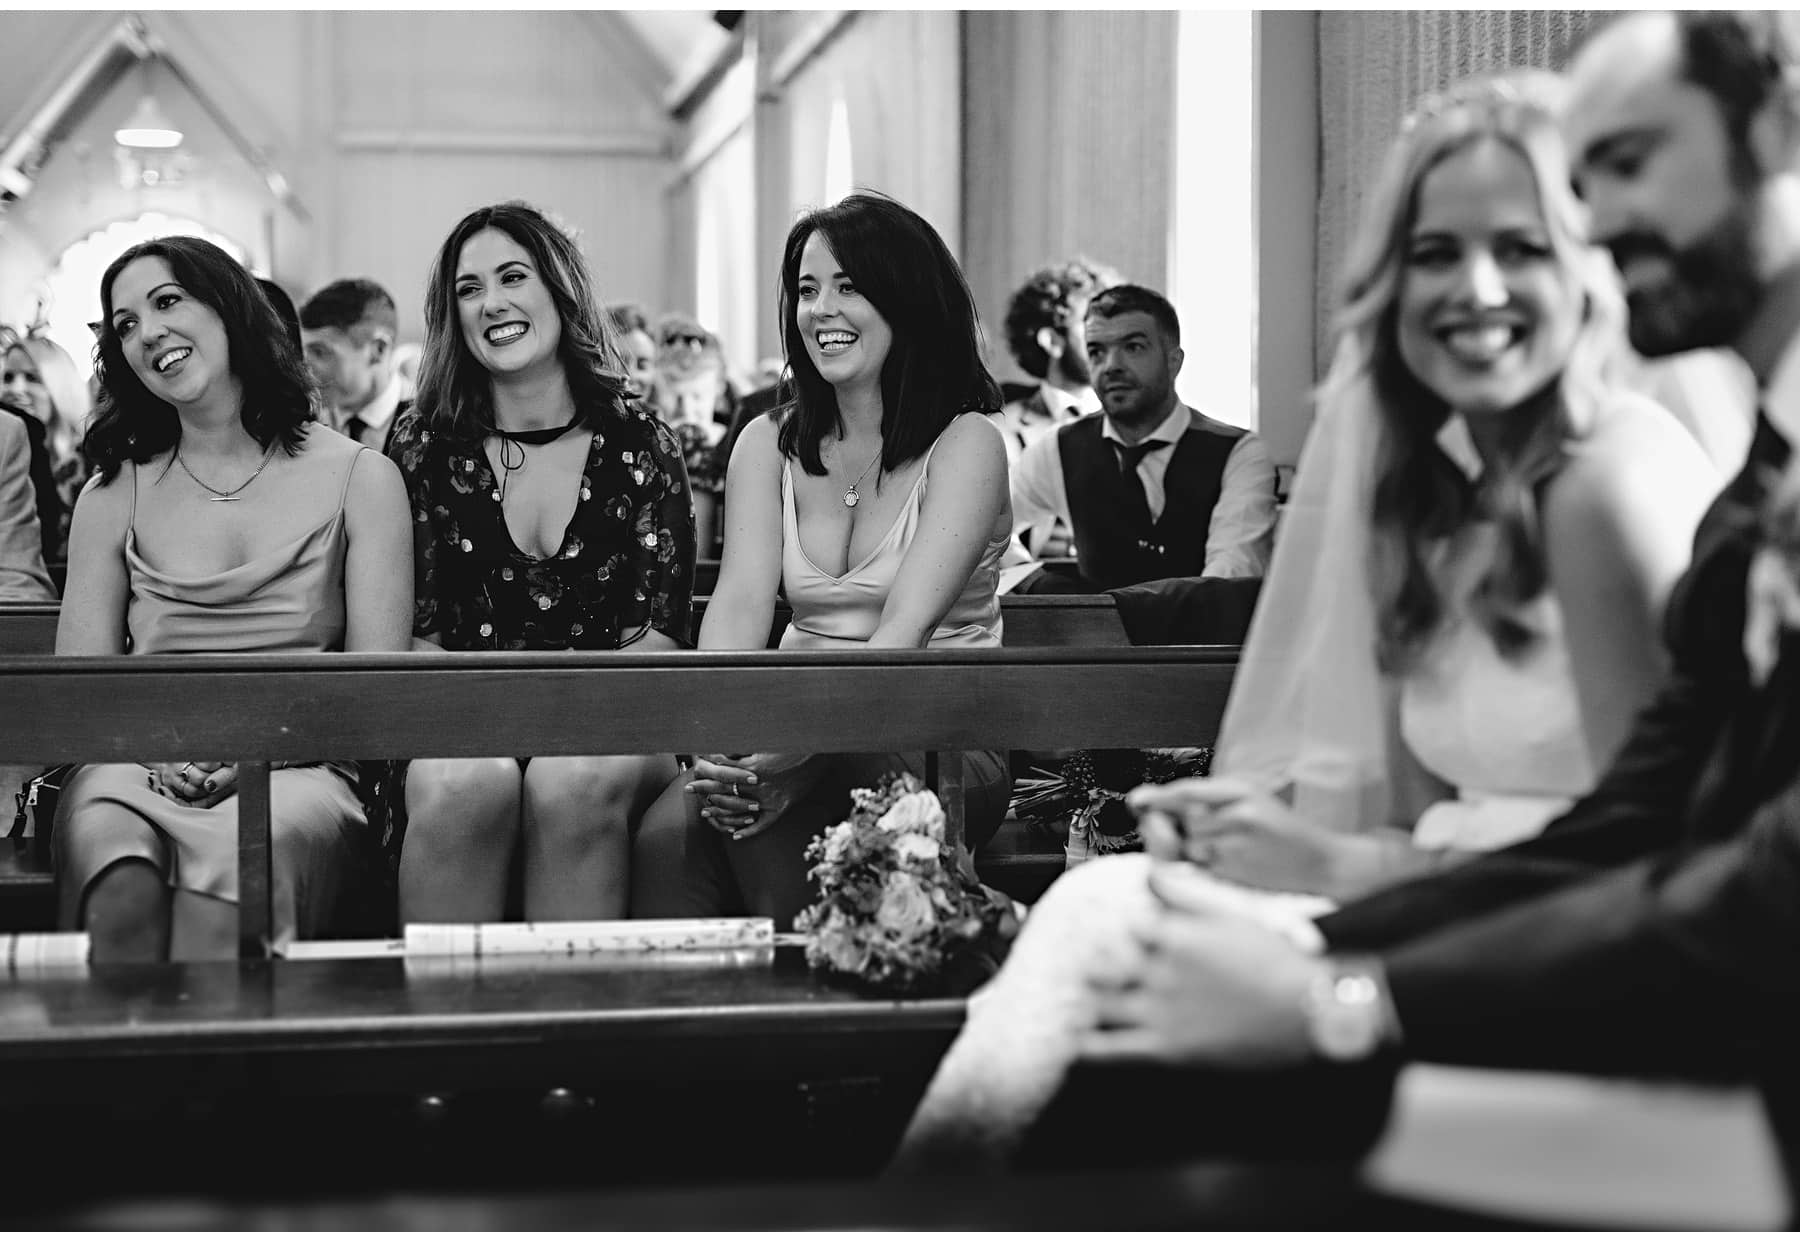 everyone smiling during the wedding ceremony